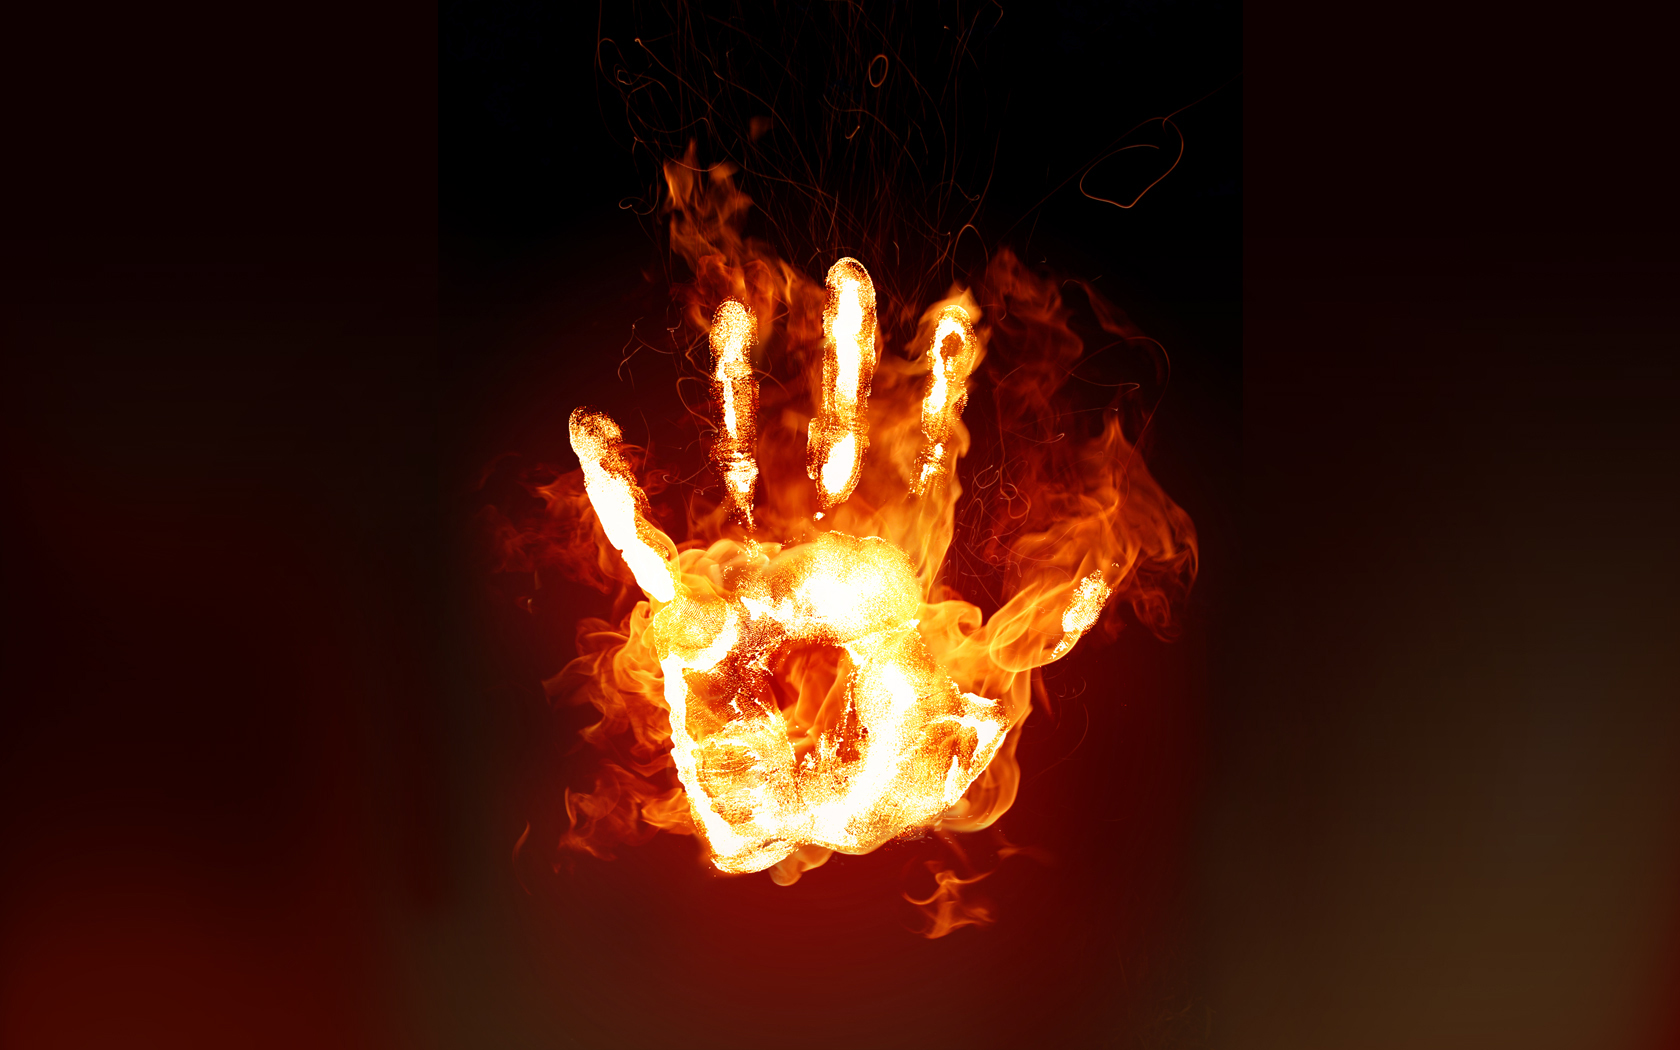 Dark - Artistic  - Fire - Hand - Dark - Flame Wallpaper